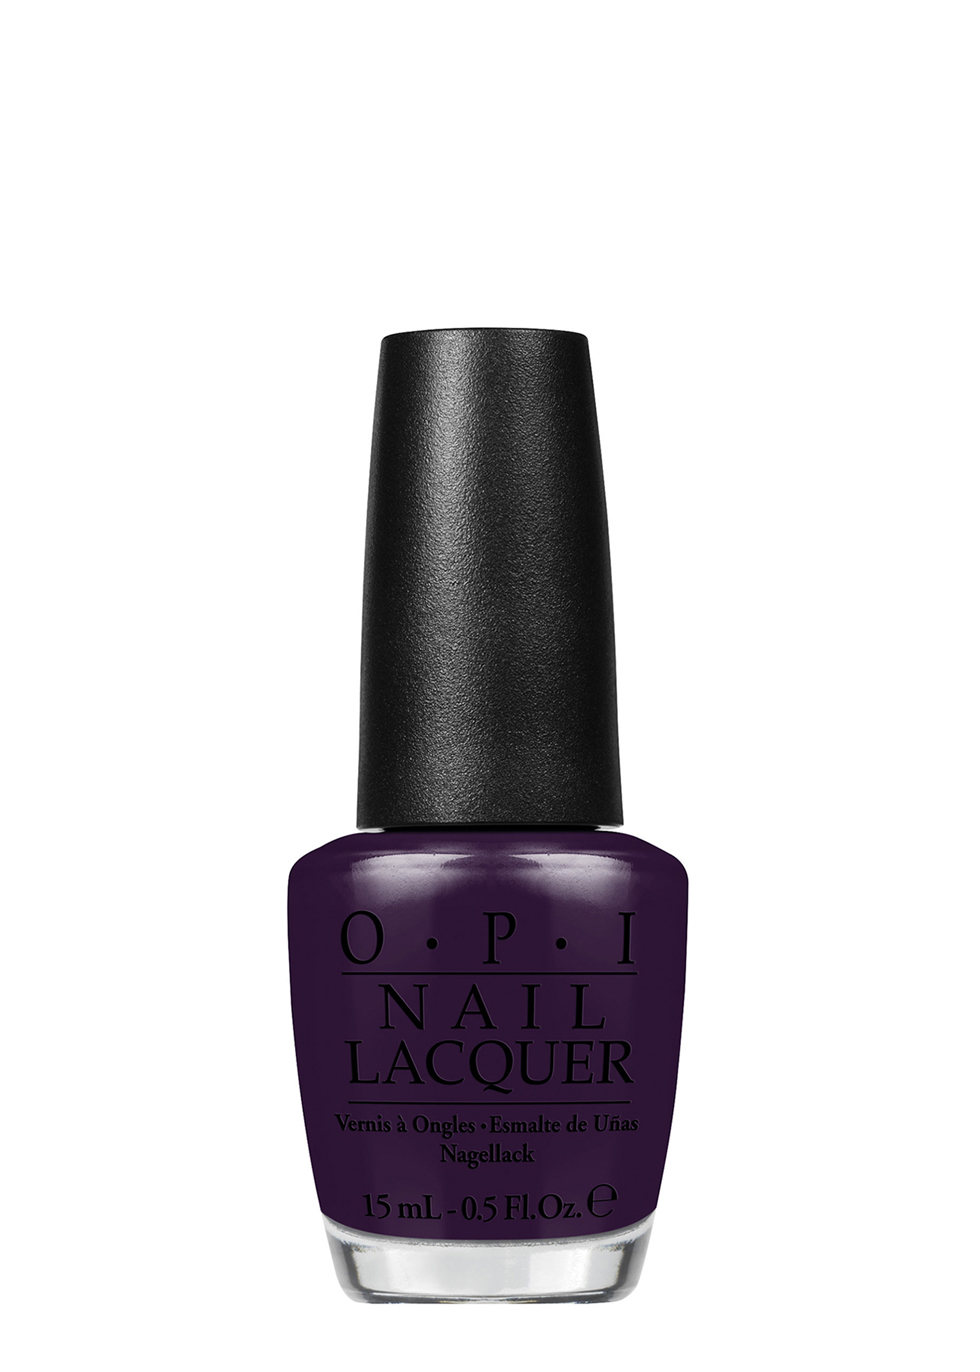 OPI nail lacquer in Viking in a Vinter Vonderland, £12